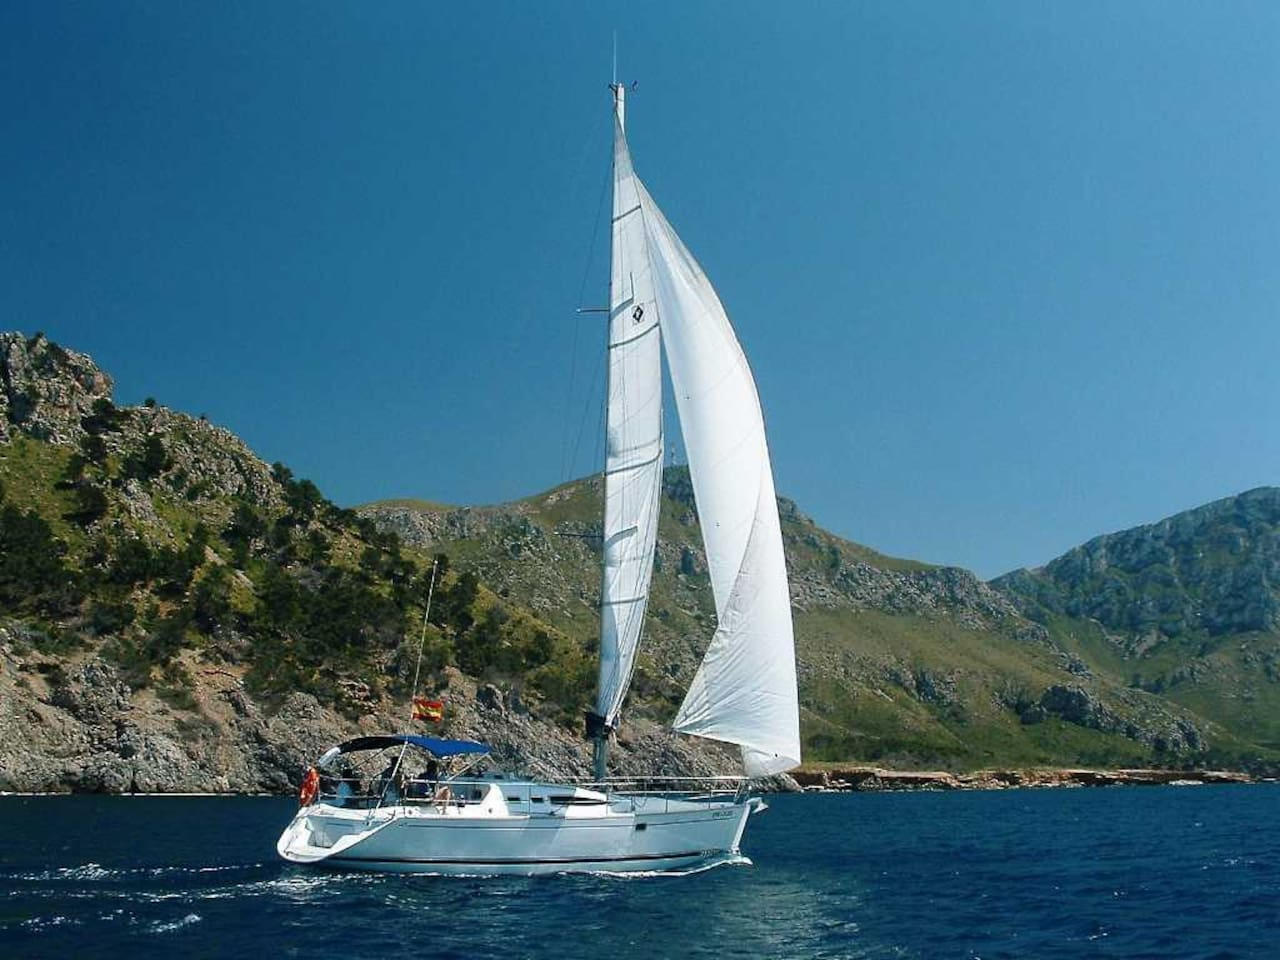 Sailing Cruise In Exclusive Use  Boats For Rent In Santa Margherita  Ligure, Liguria, Italy